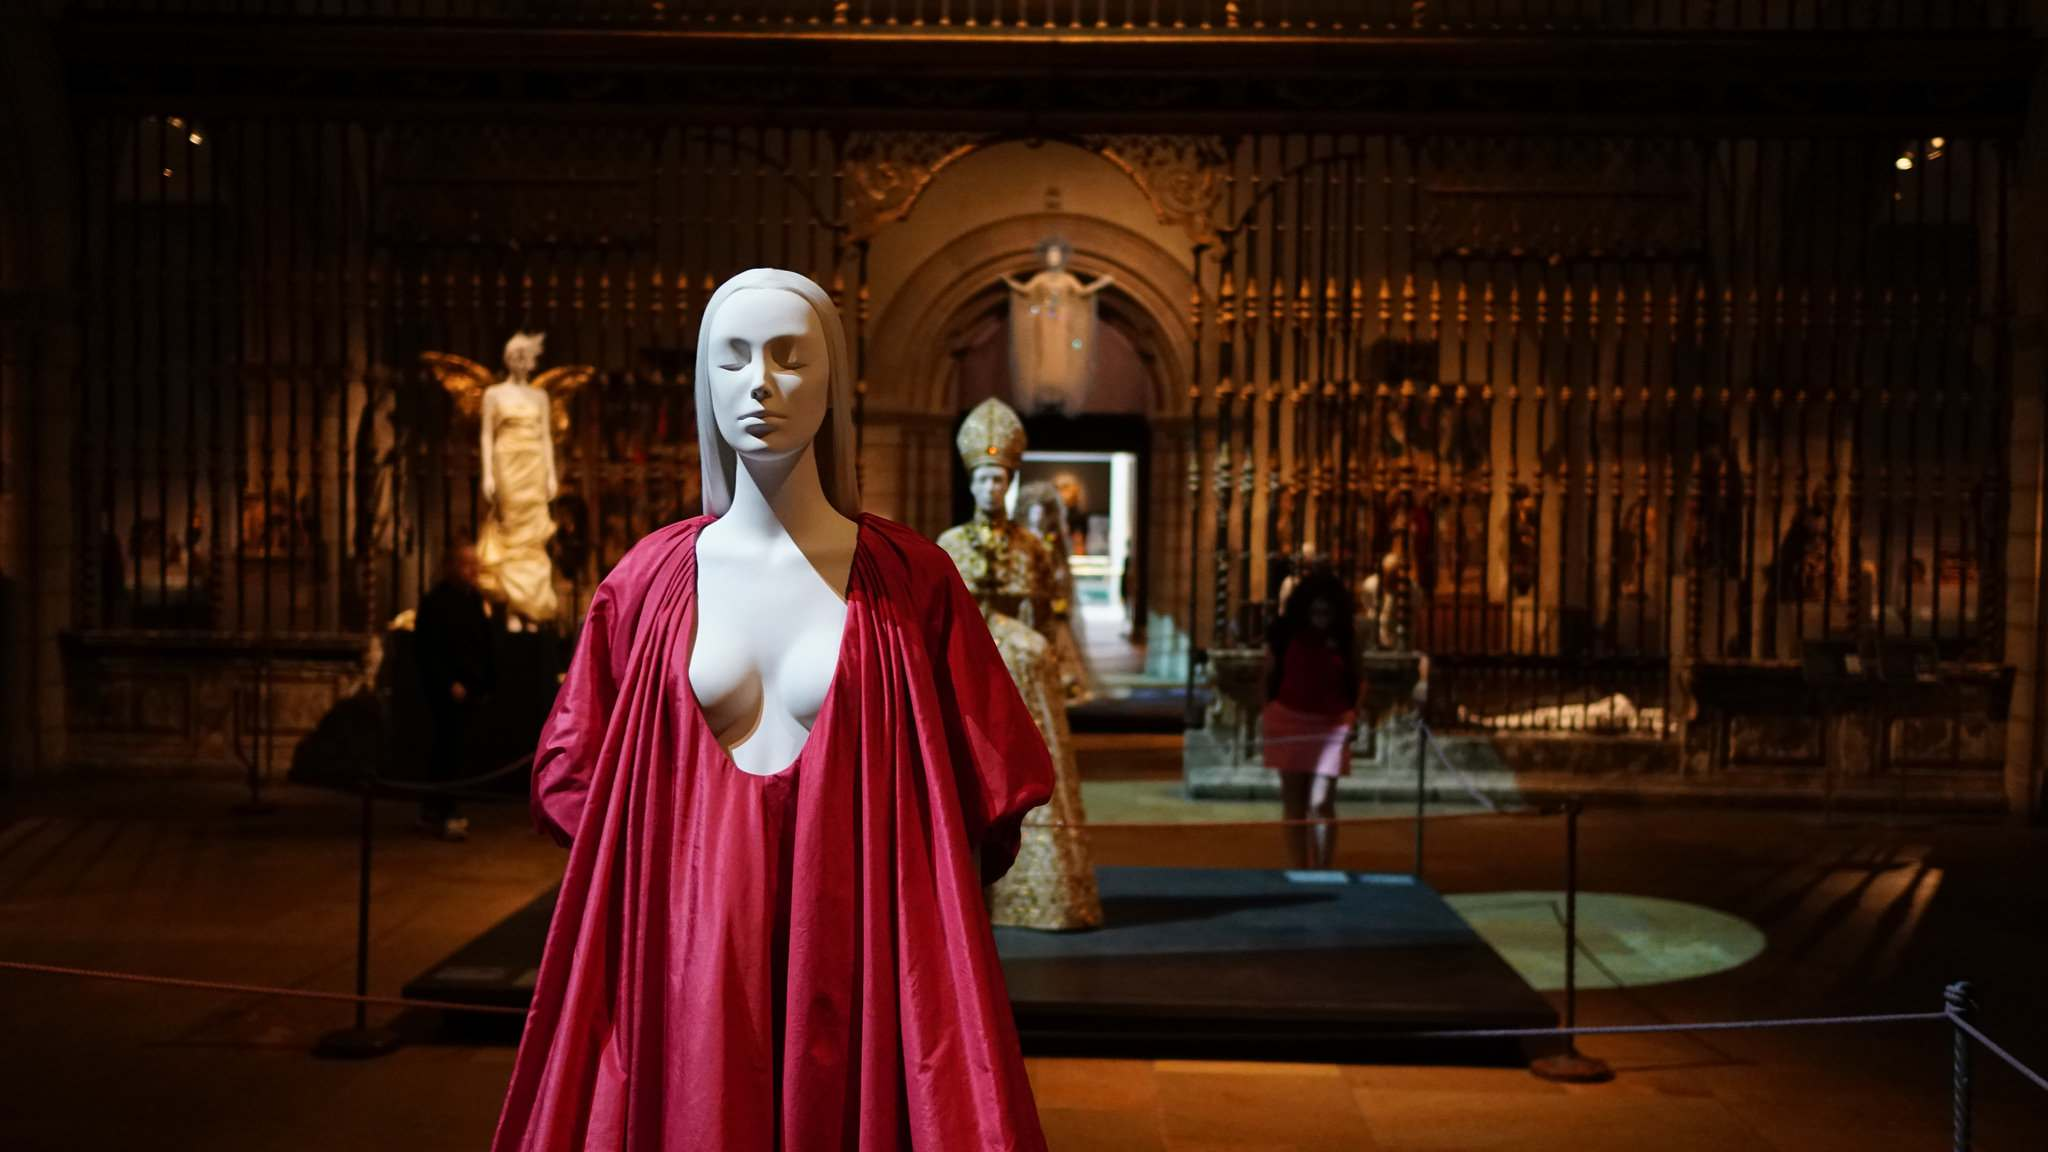 heavenly bodies7 Heavenly Bodies: Fashion and the Catholic Imagination in MET